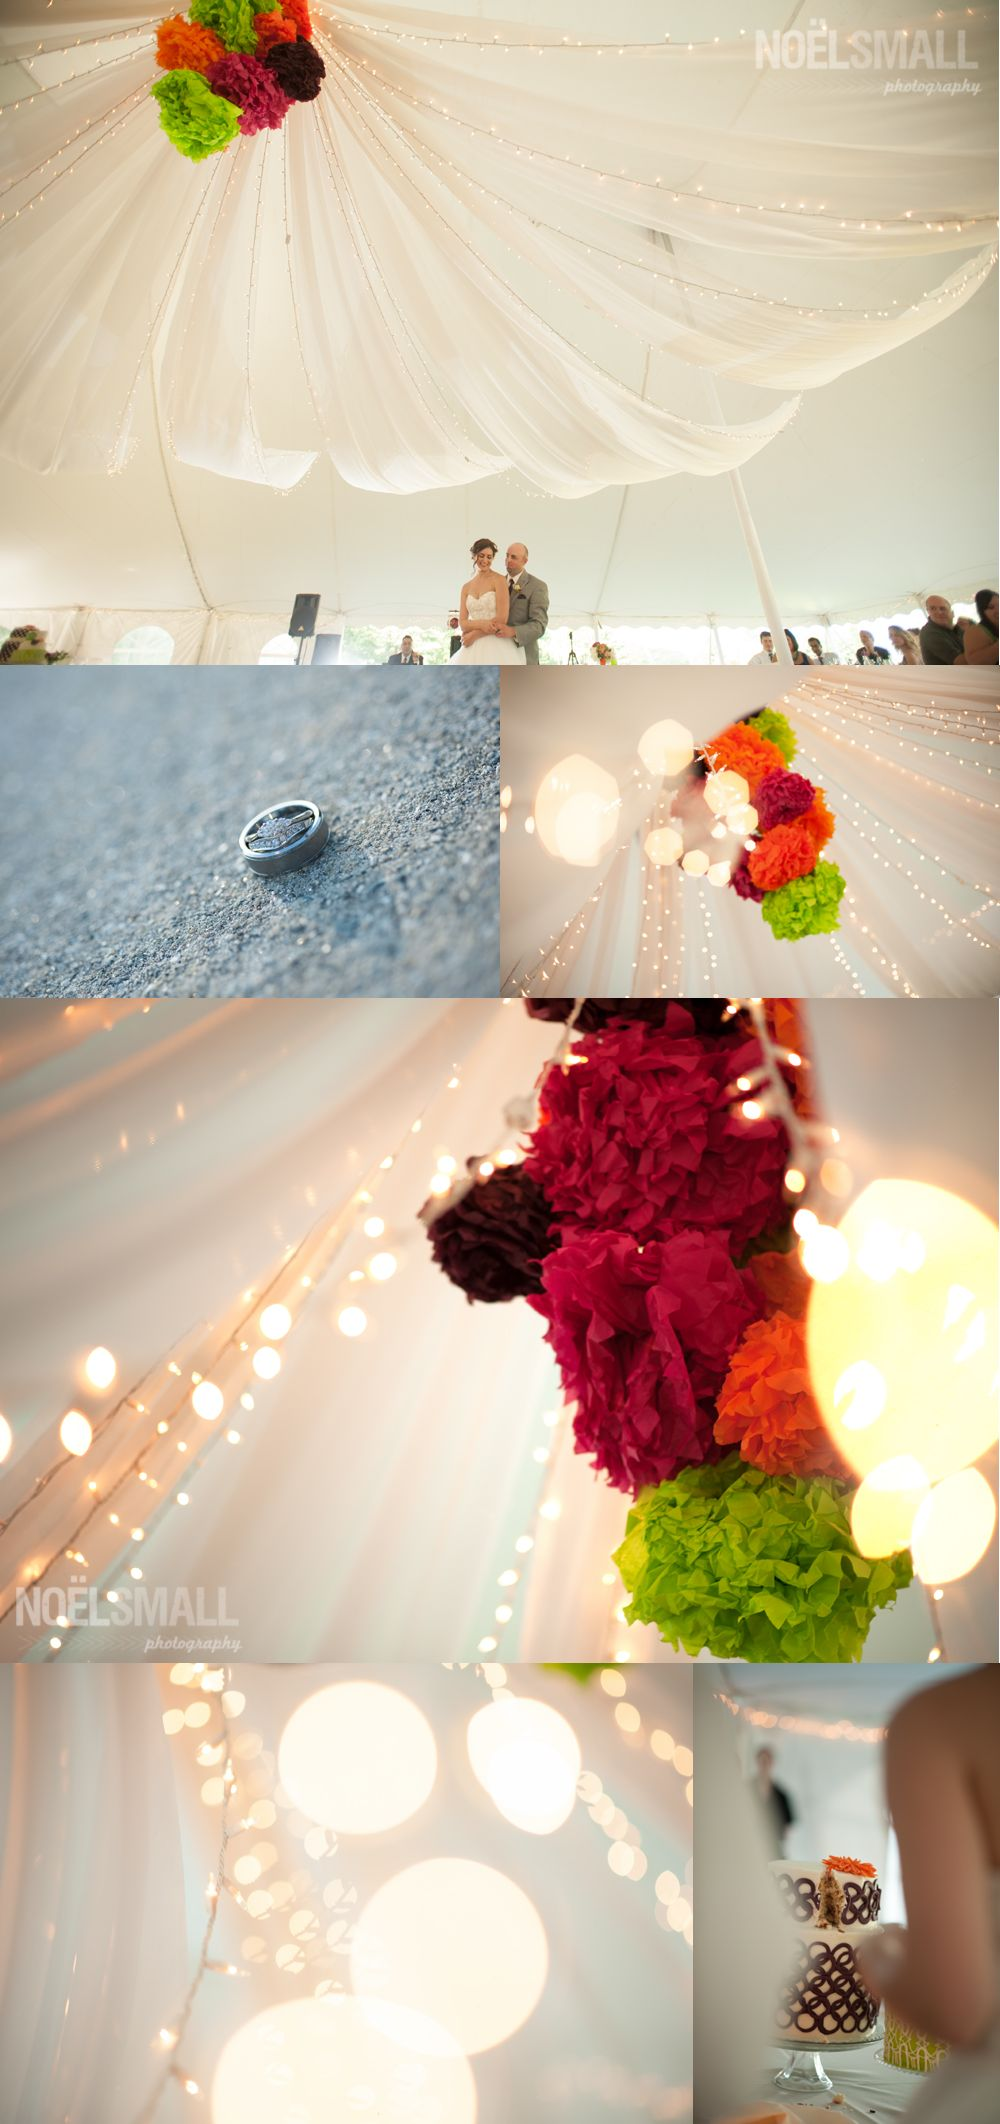 Fabric Canopy In Tent Over Dance Floor With Twinkle Lights And